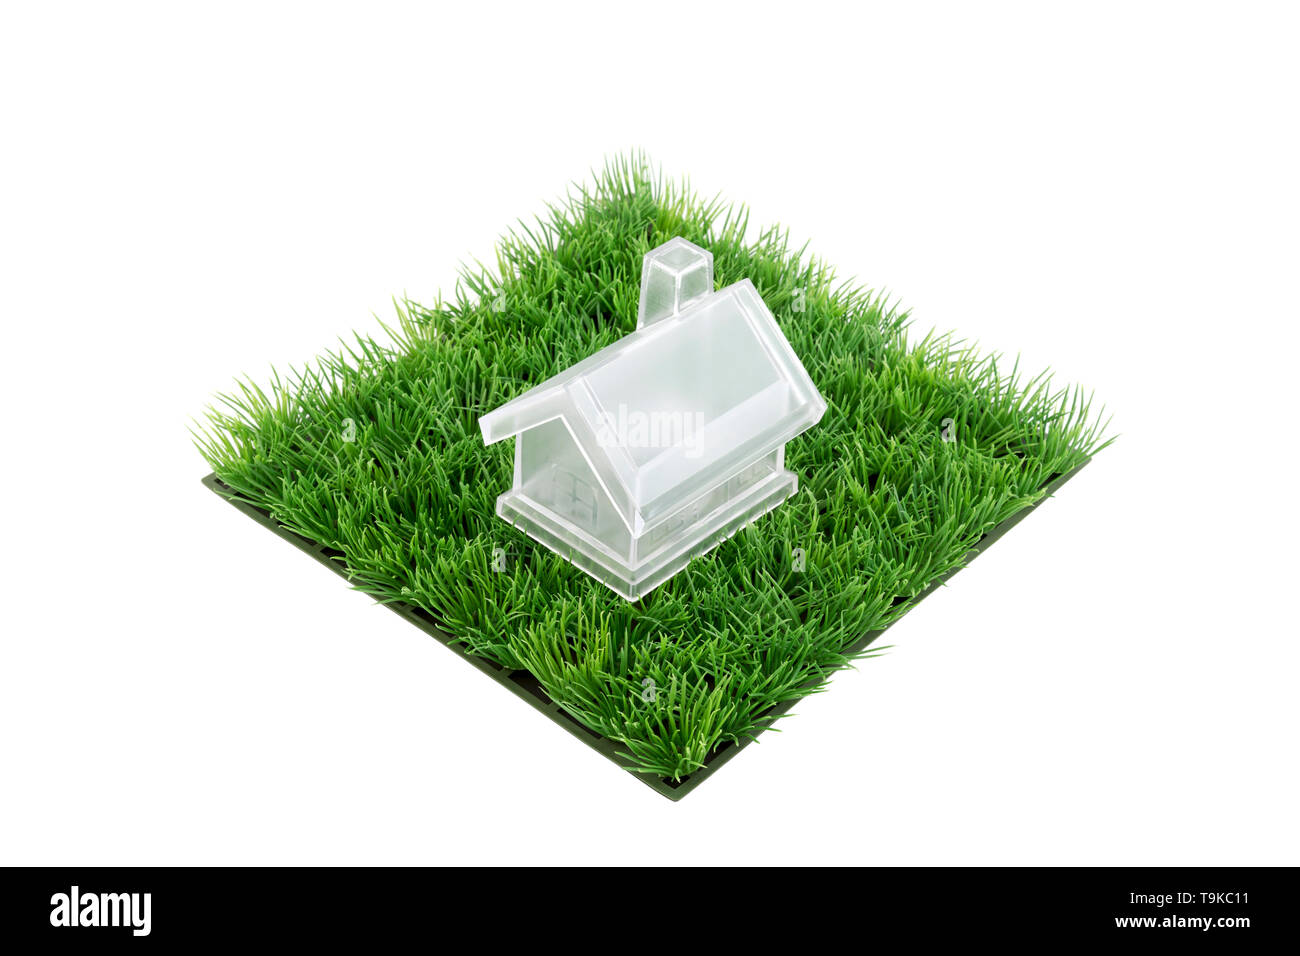 Crystal house on square of green grass field isolated on white background - Stock Image